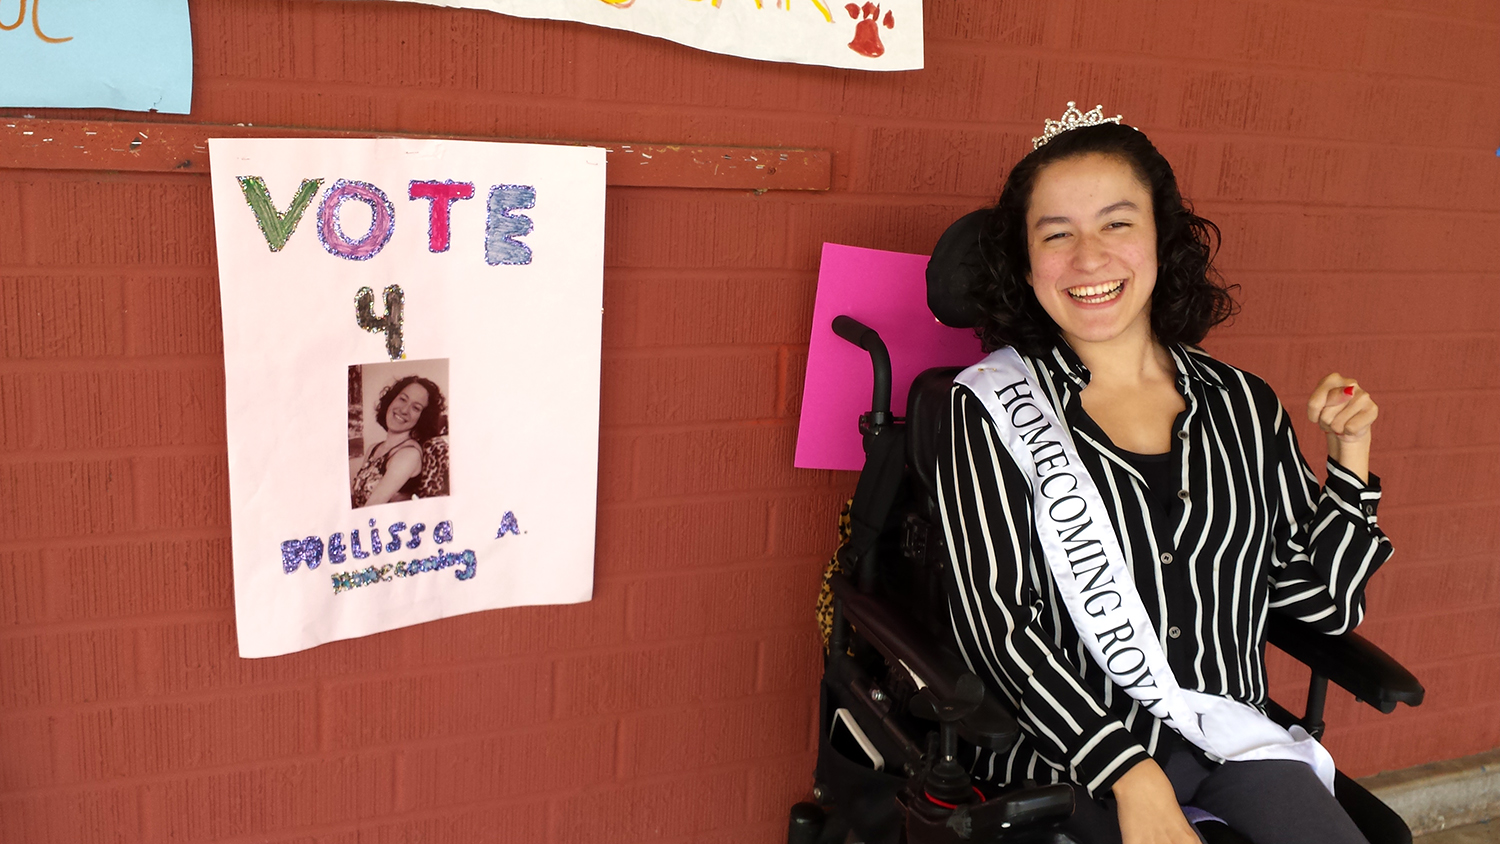 Cerebral palsy student crowned homecoming queen - TODAY.com